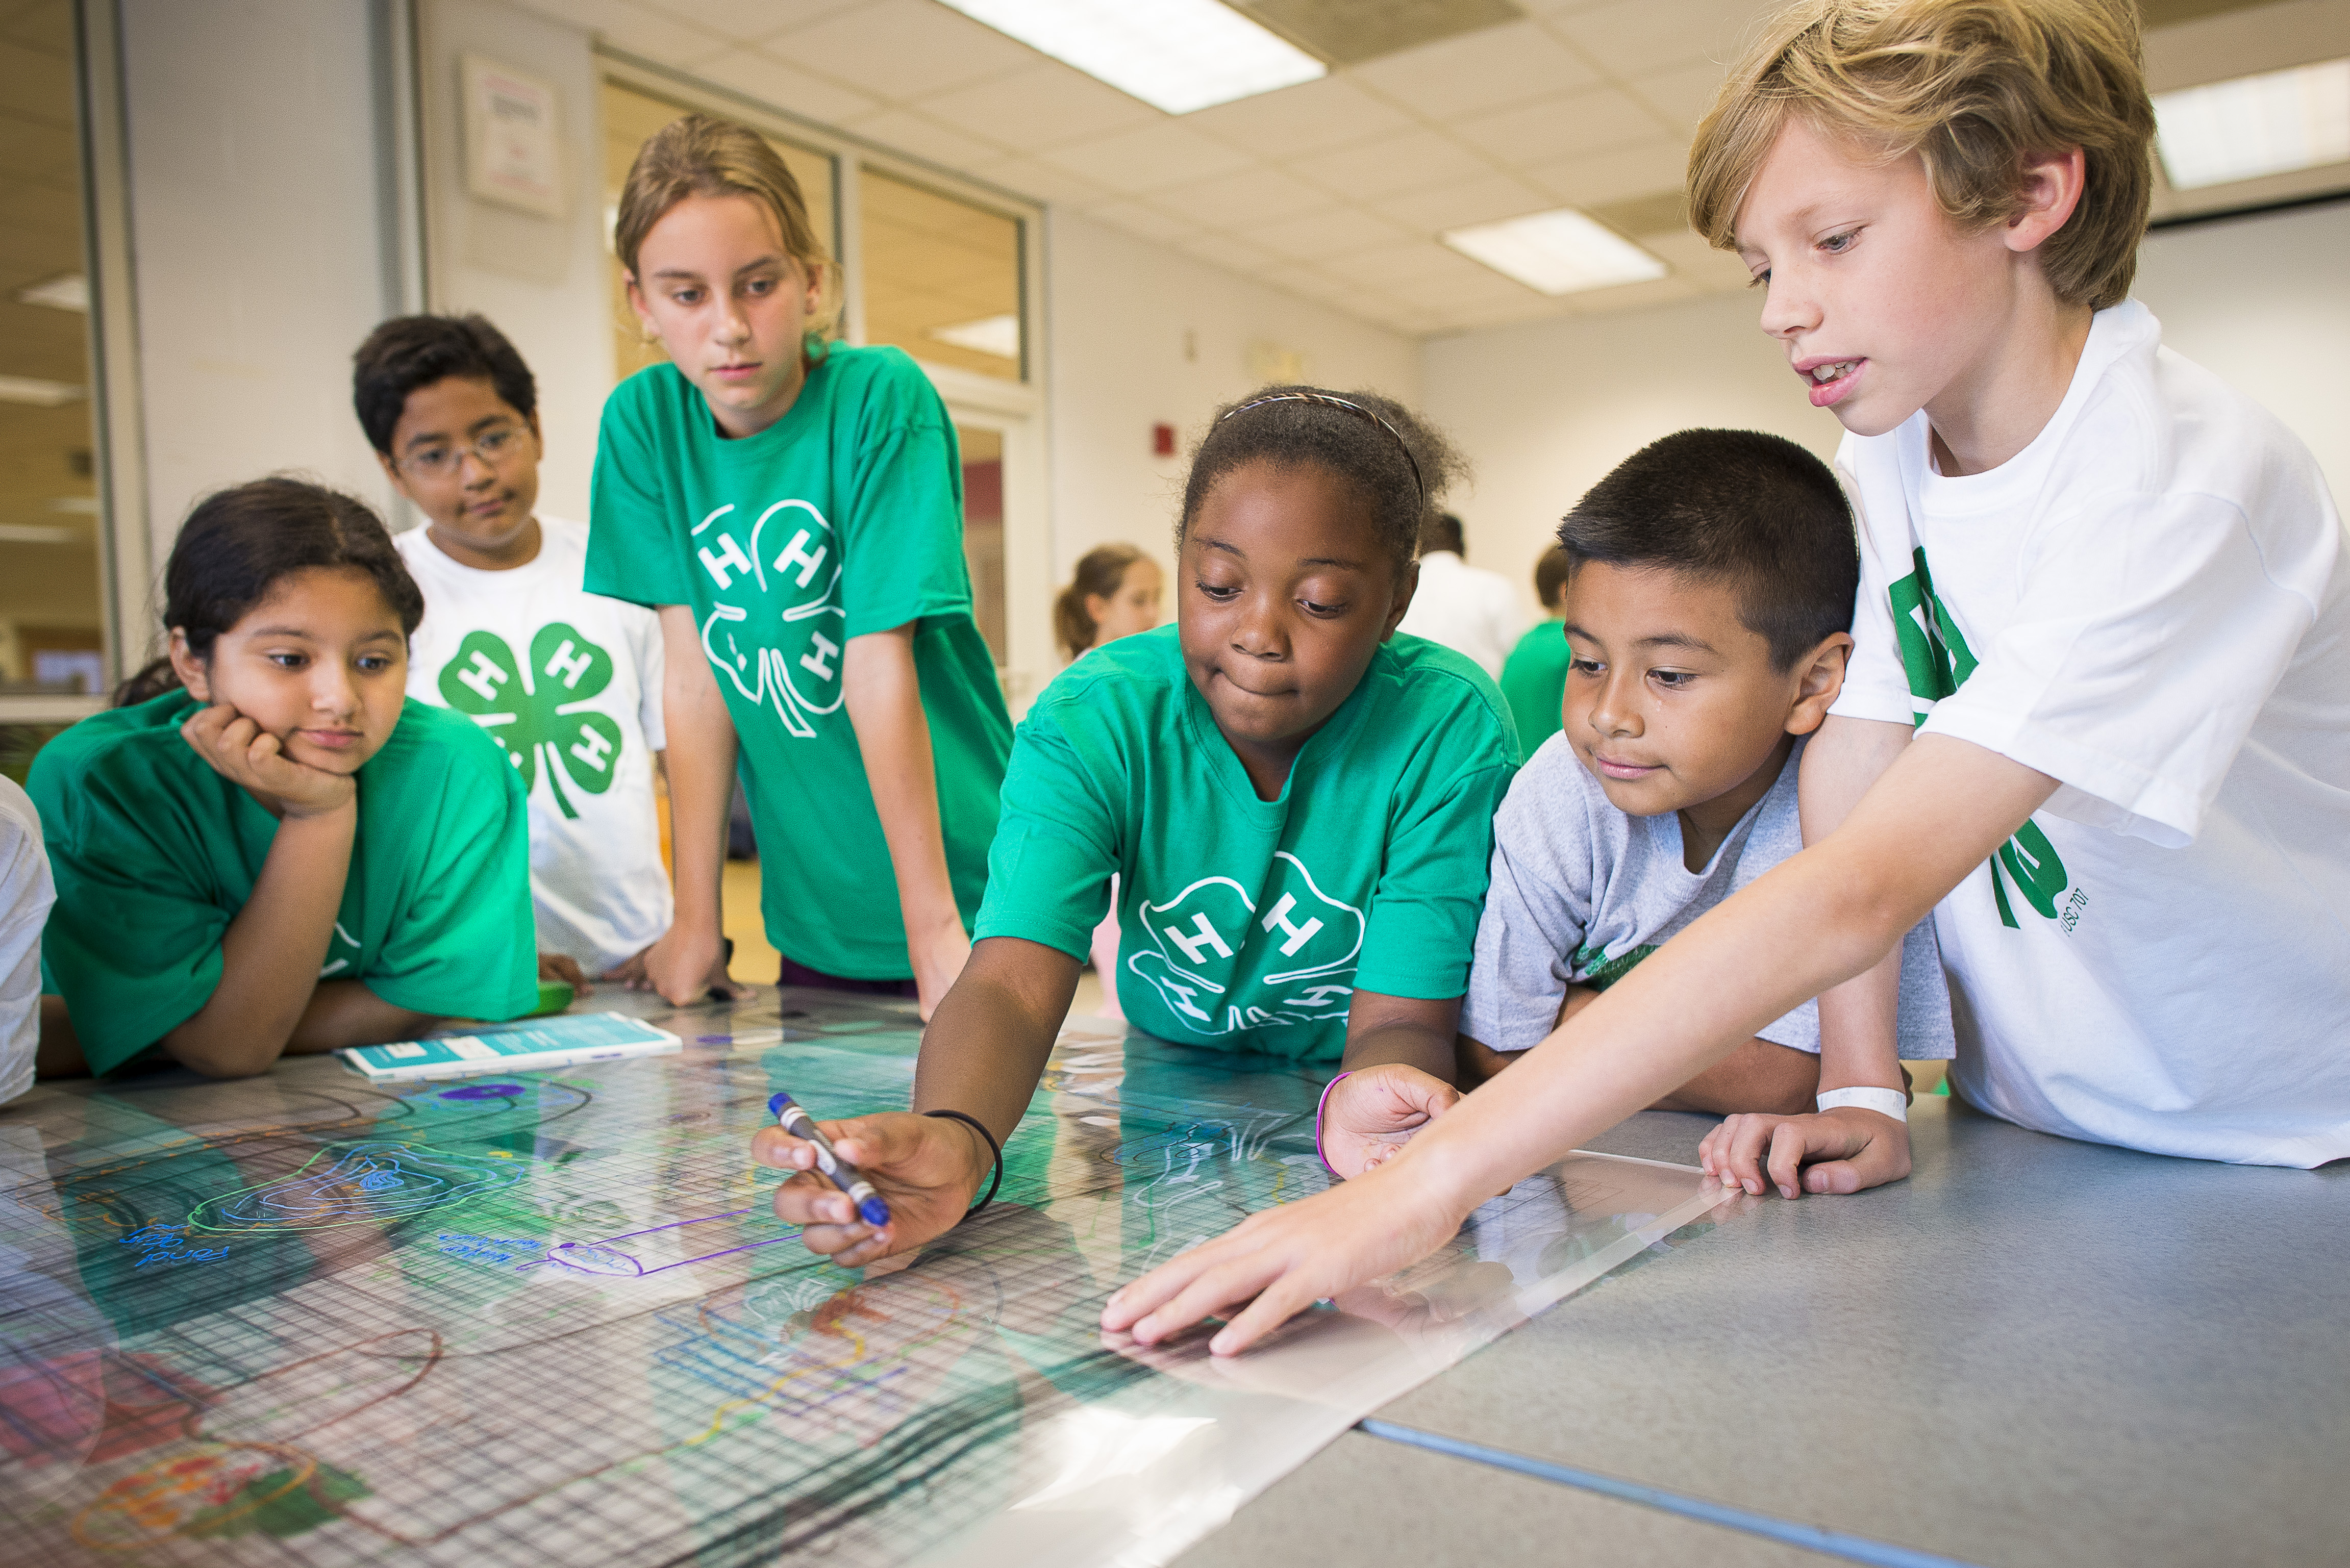 4-H Learning